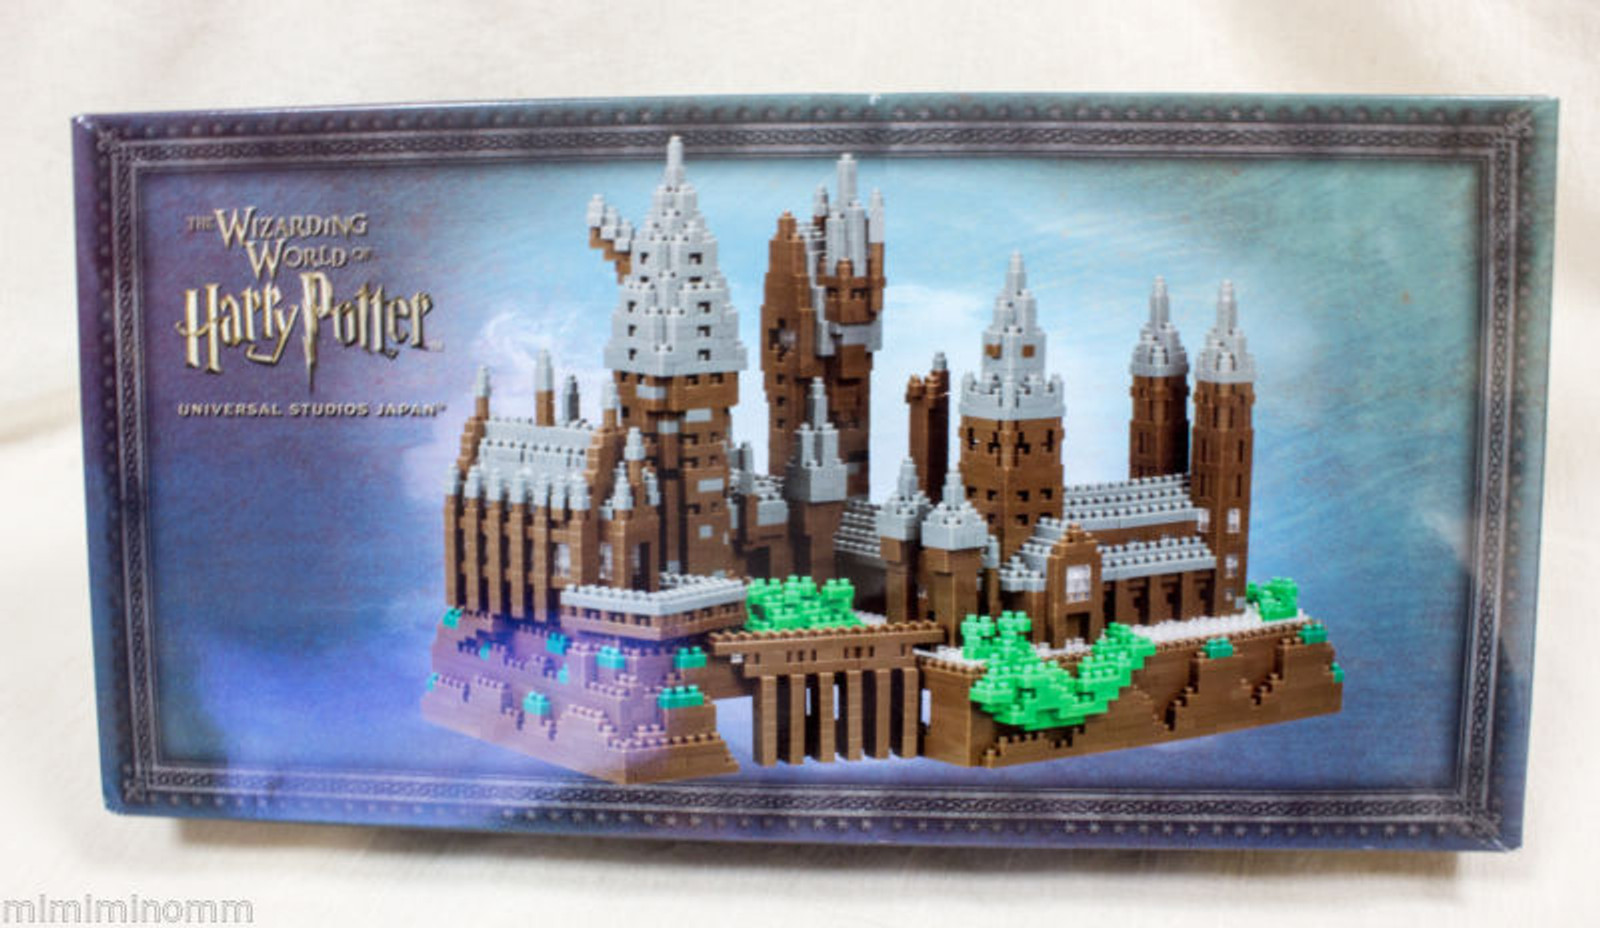 Harry Potter USJ Hogwarts Castle Nanoblock Kawada Limited JAPAN FIGURE